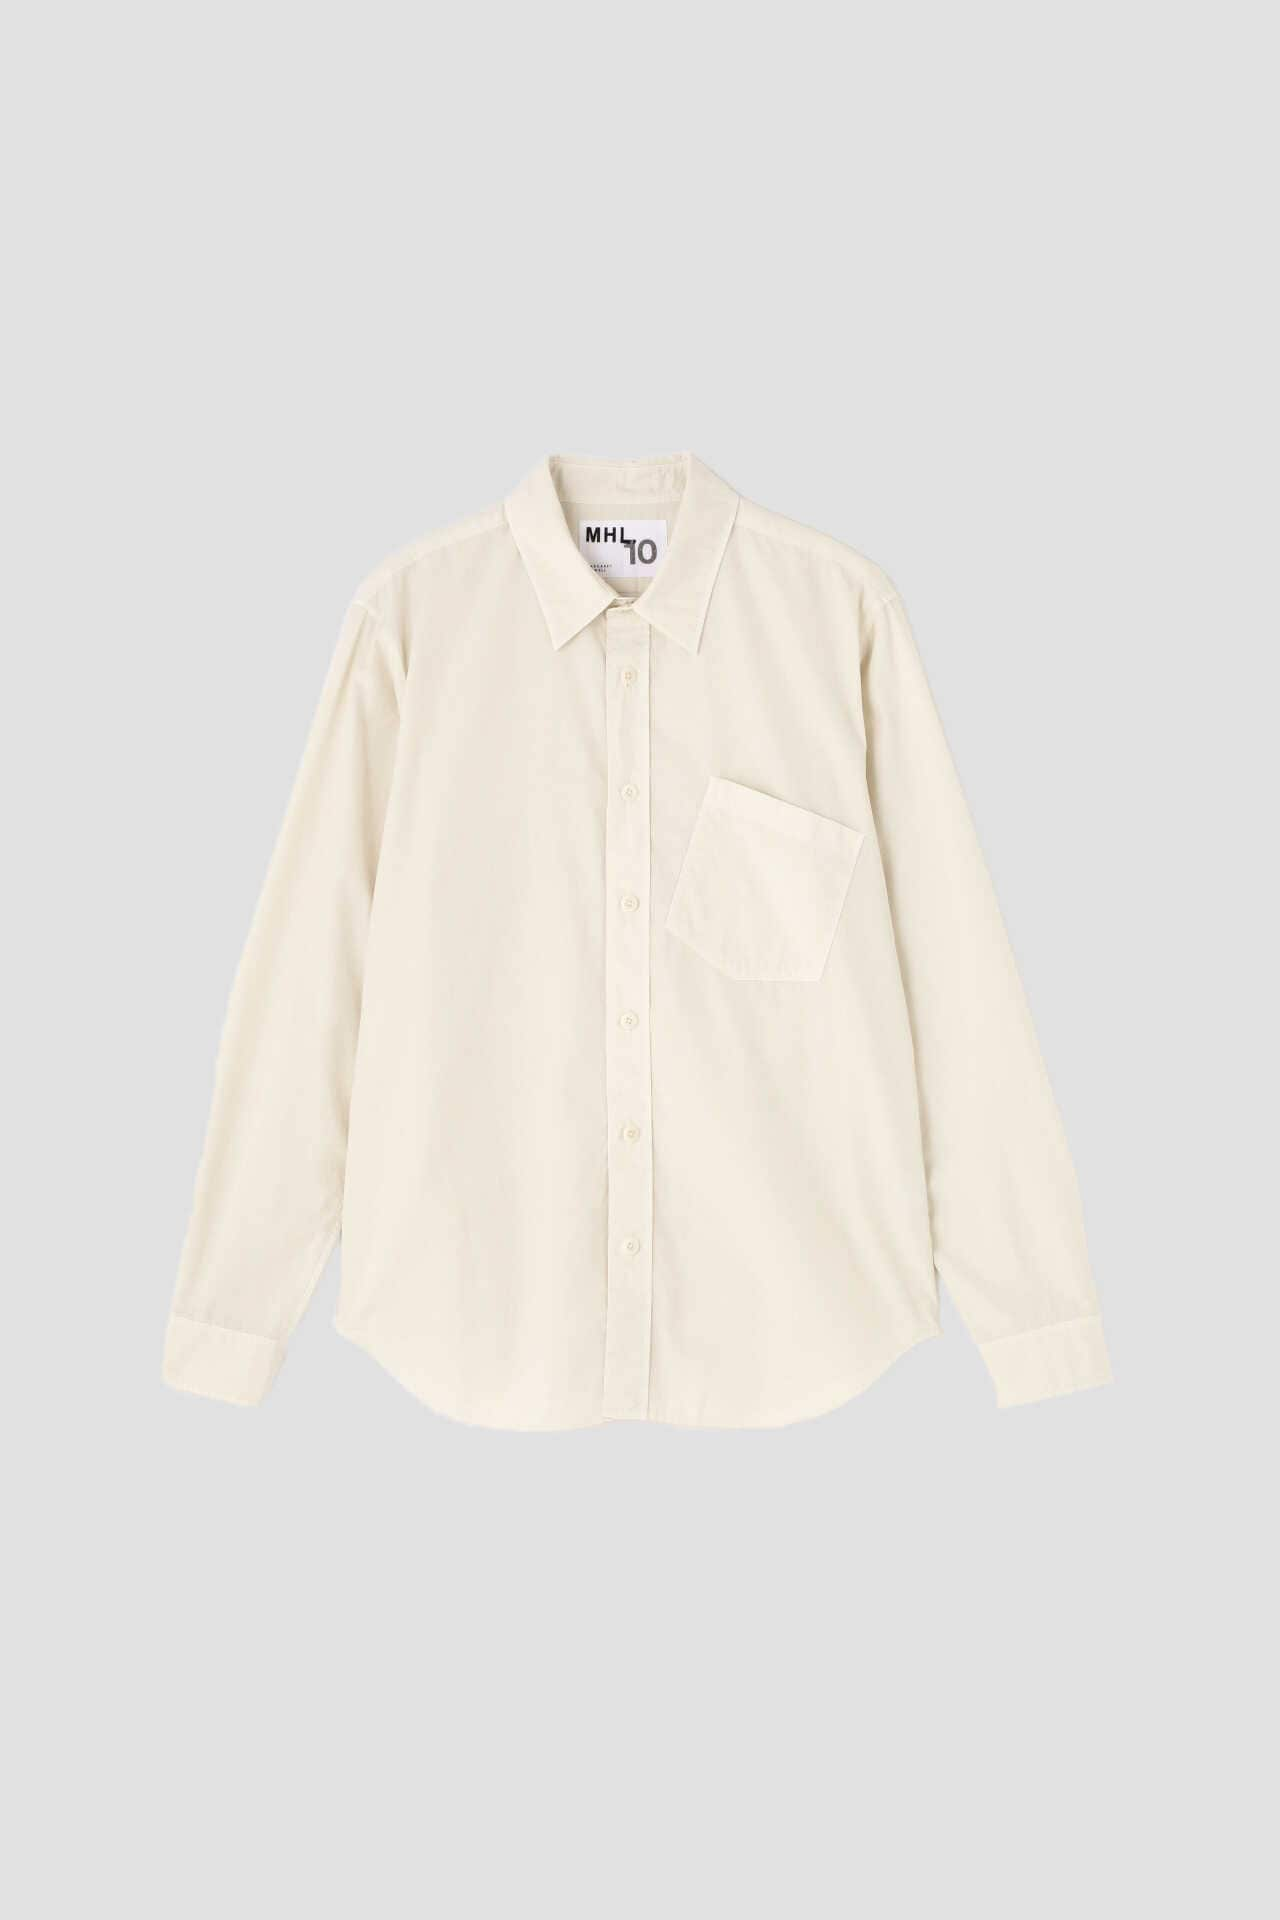 COMPACT COTTON POPLIN(MHL 代官山限定)1